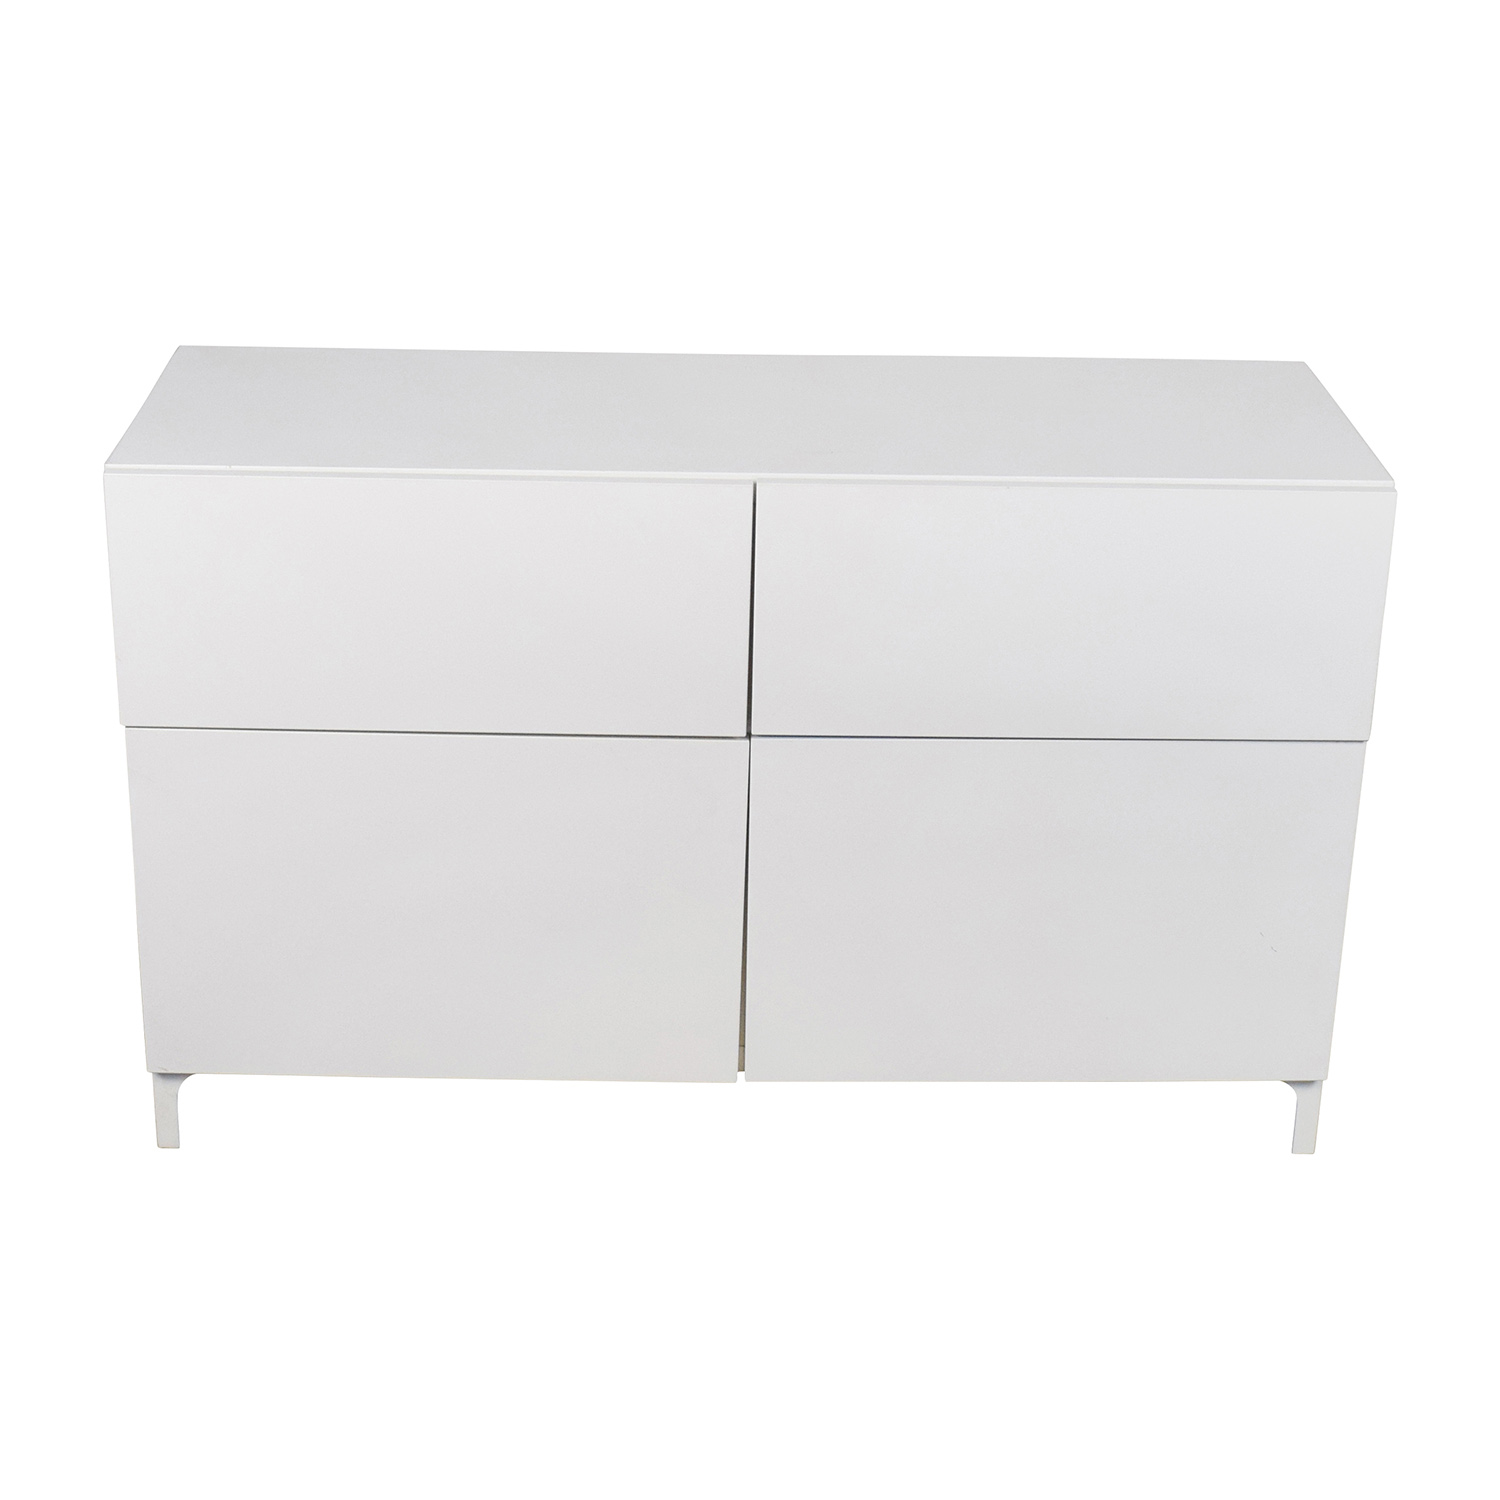 white sideboard cabinet ikea hemnes dresser white stain ikea use instead of sideboard is